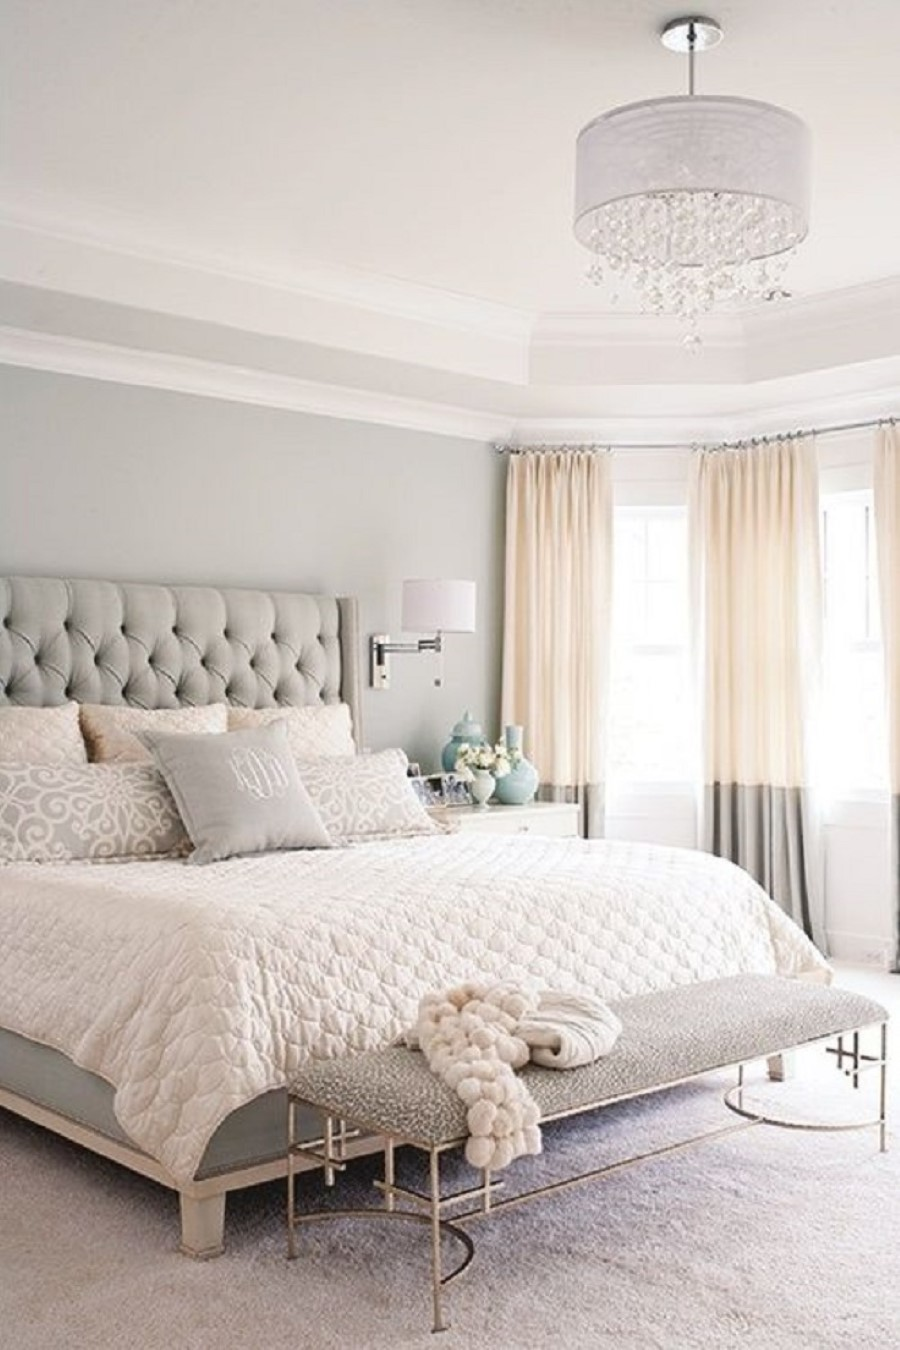 Best paint colors for small room some tips homesfeed for Small room tips